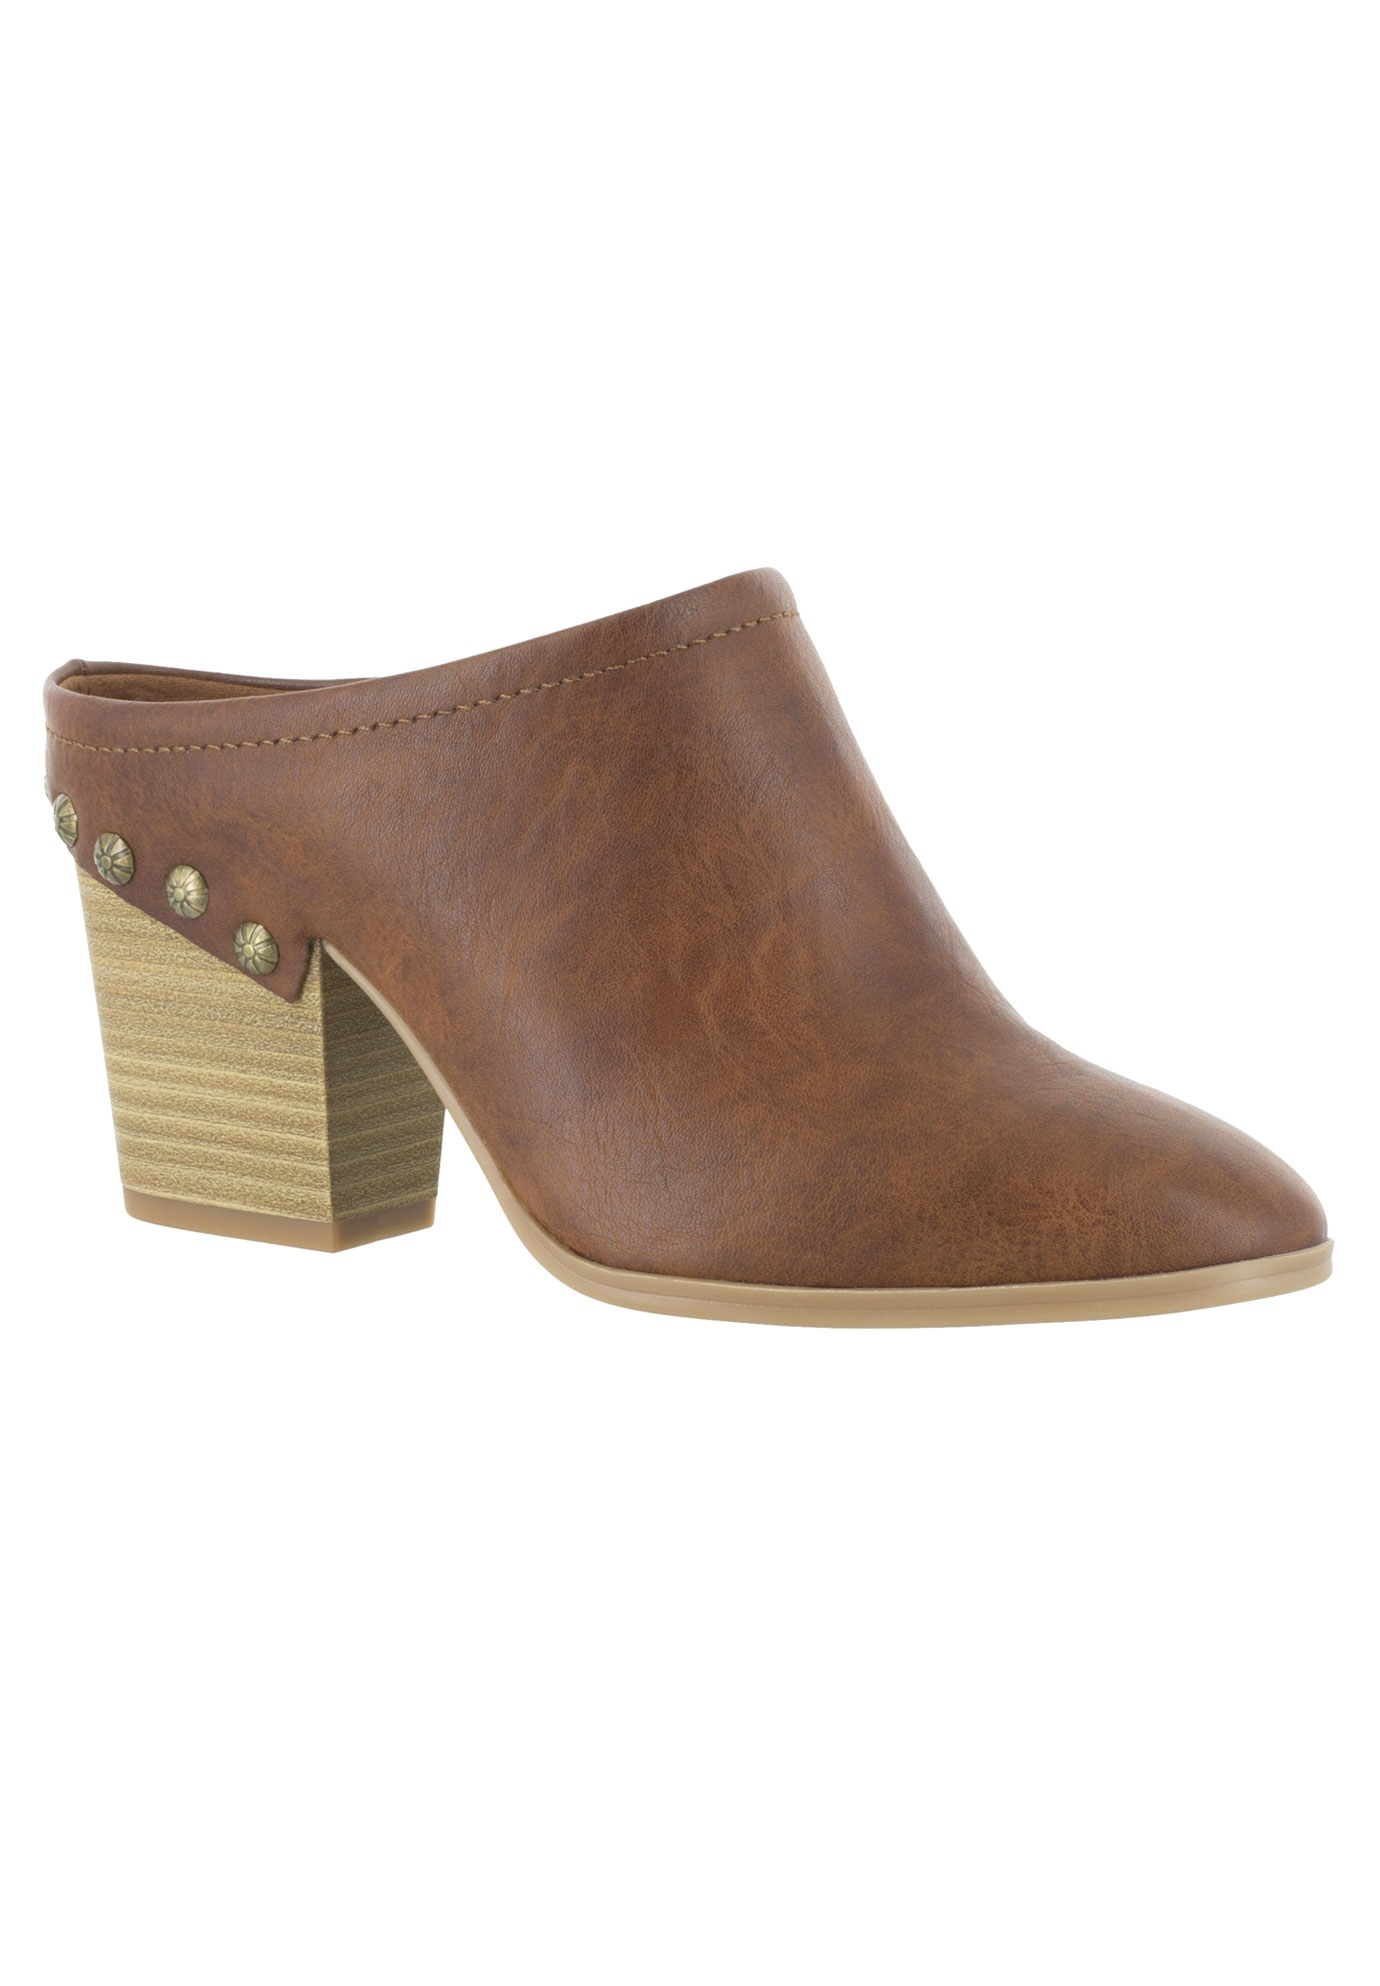 Shiloh Booties by Easy Street®, TAN, hi-res